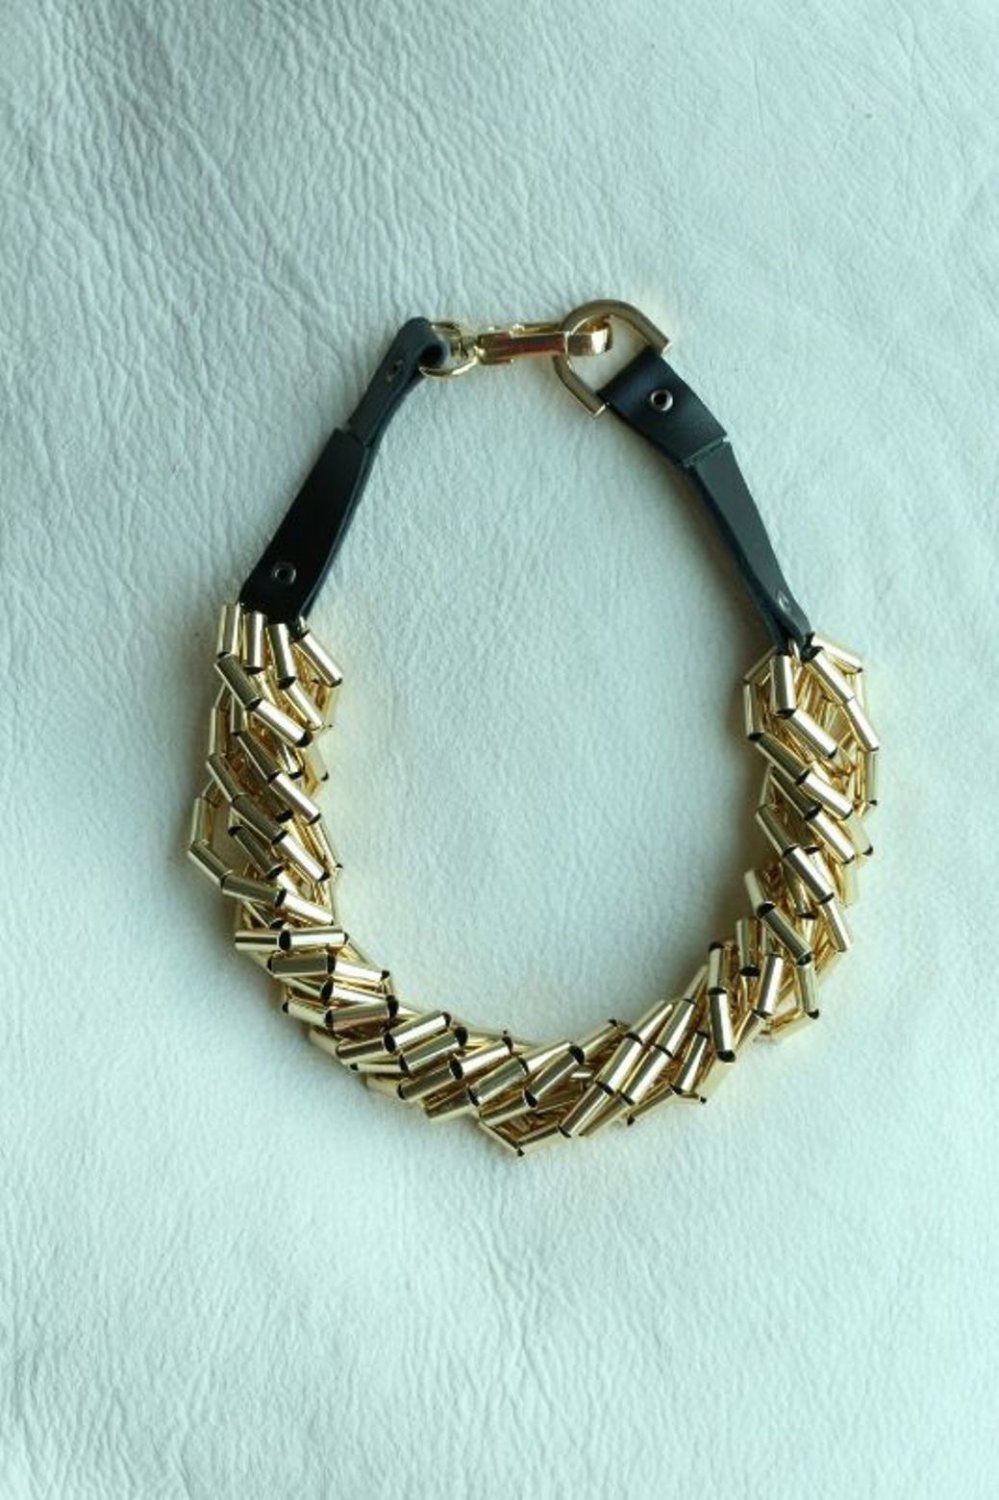 NL06 New Design Fashion Style Party or Wedding Golden Necklaces